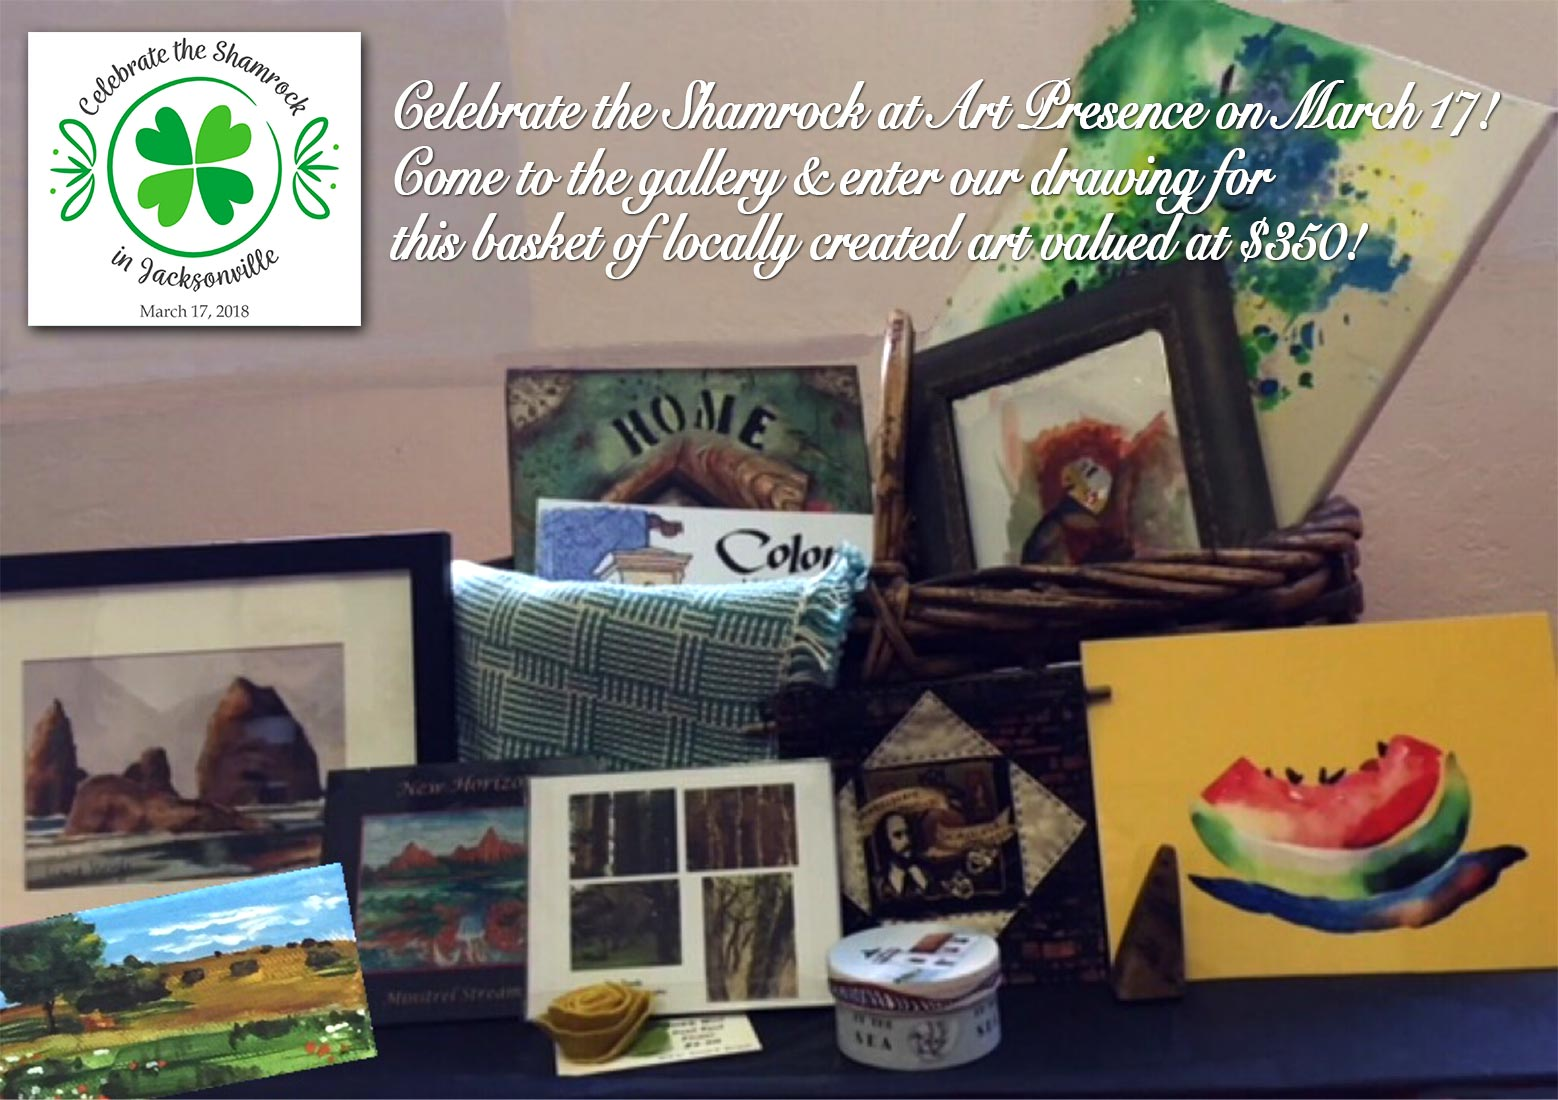 St Patrick's Day at Art Presence - Celebrate the Shamrock with us and enter to win this basket of art valued at $350!!